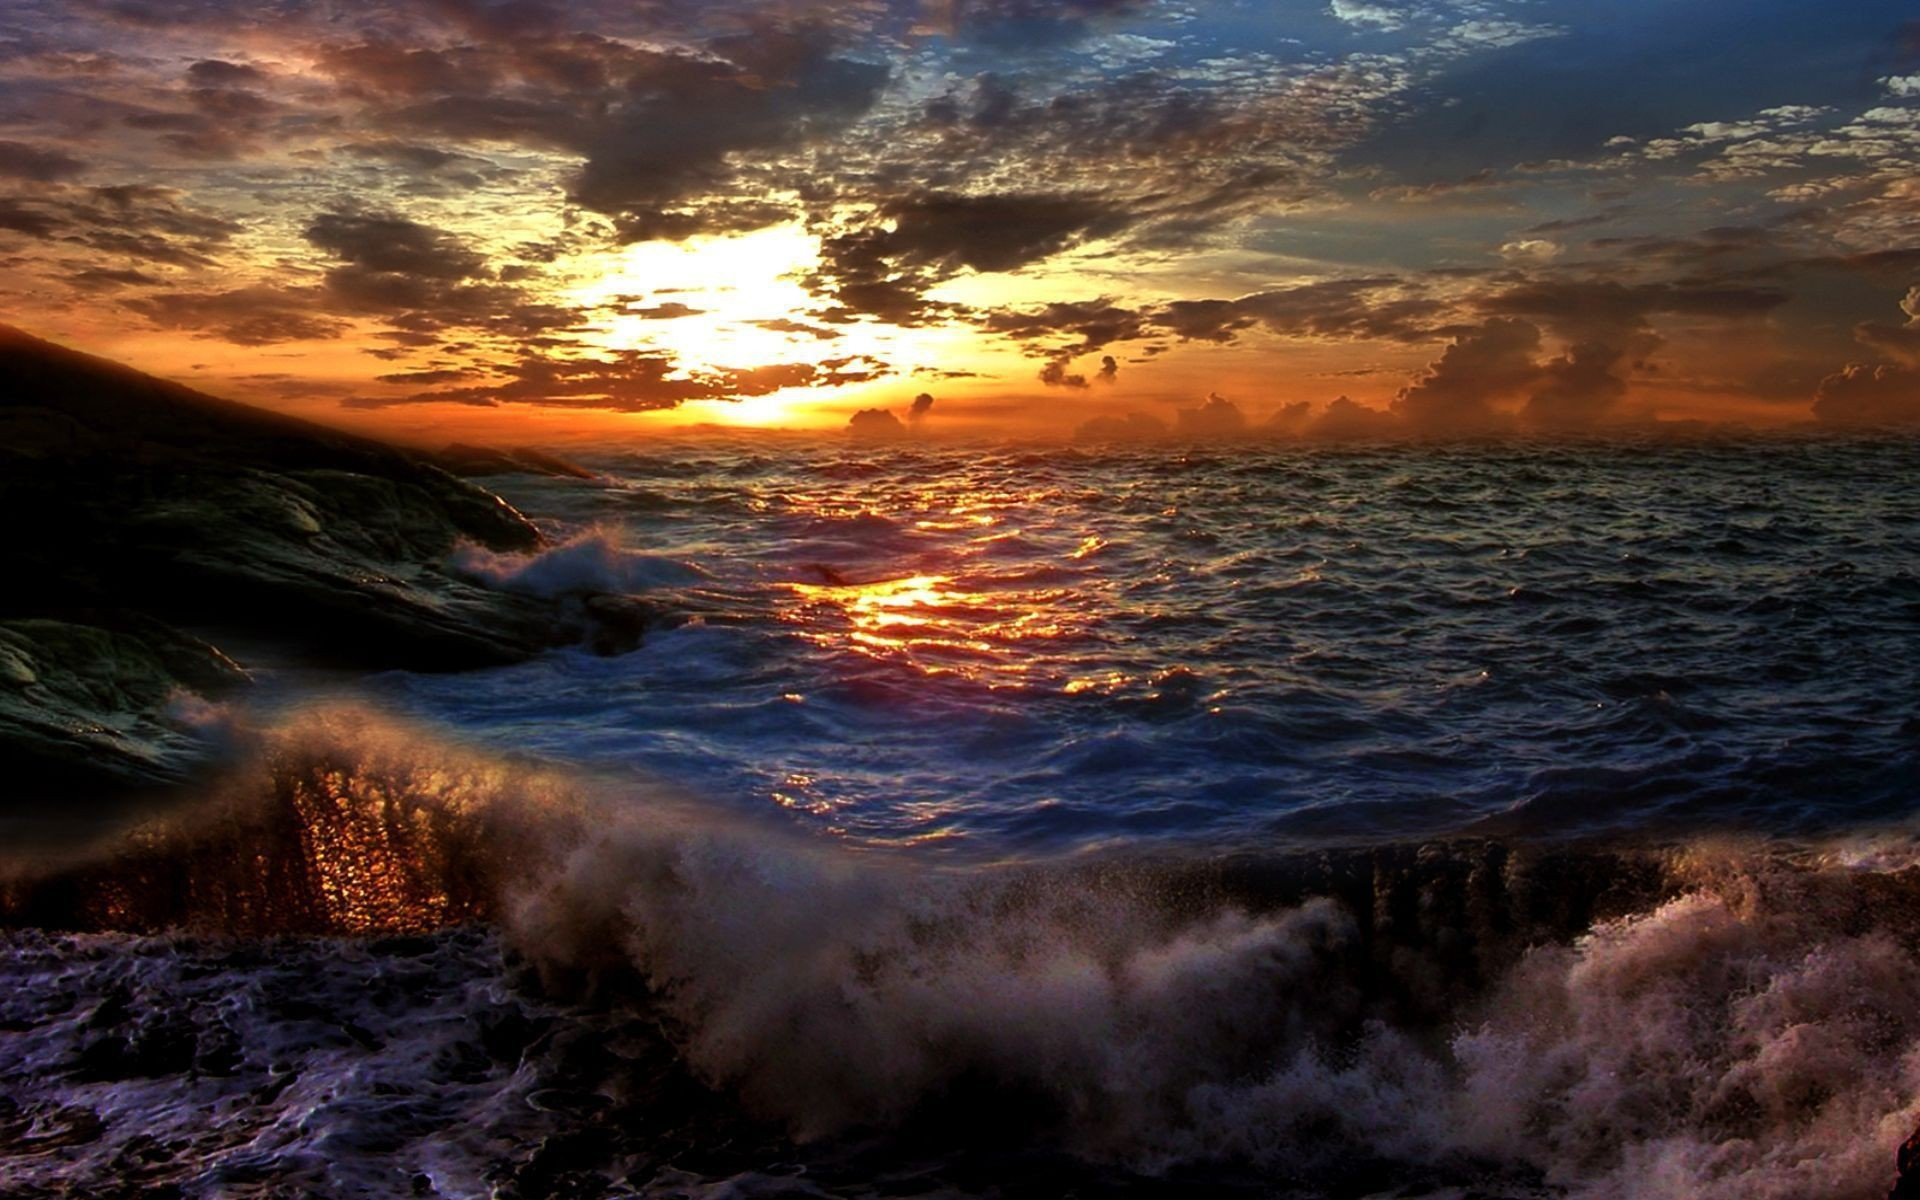 Zastaki Com Sunset on a Stormy Sea Wallpaper